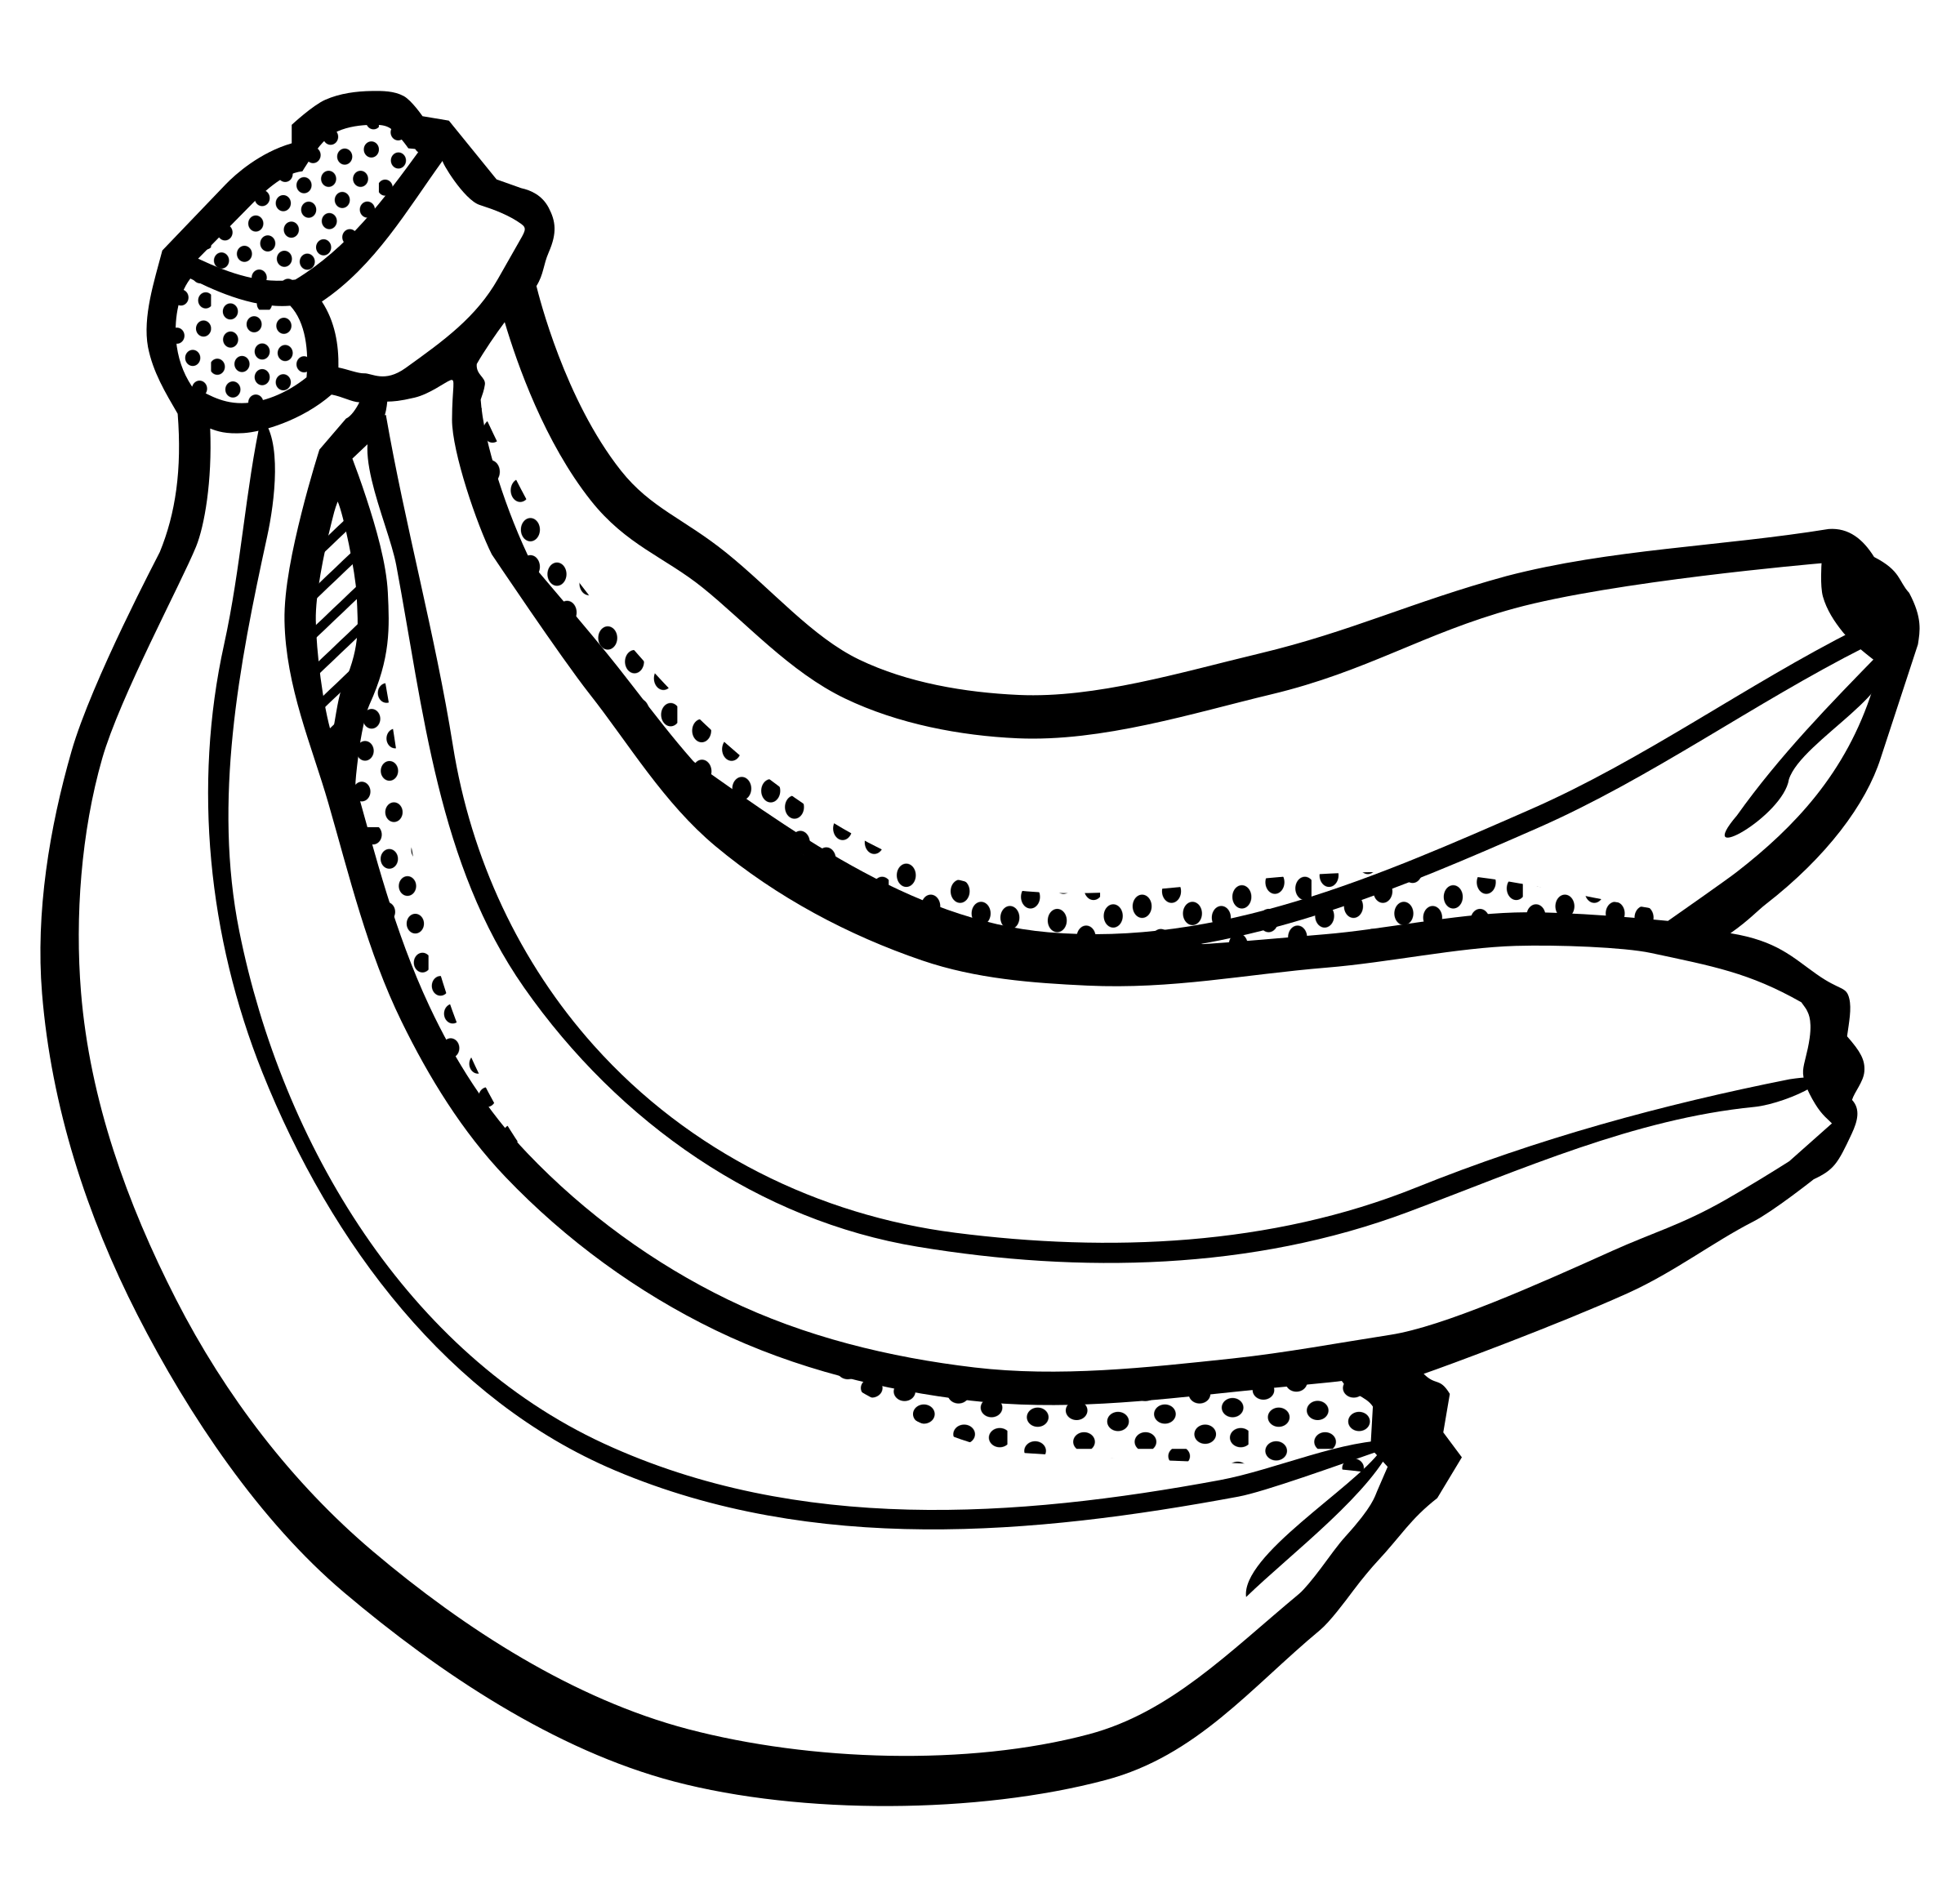 Bananas clipart black picture library stock Banana clipart black and white 2 » Clipart Station picture library stock